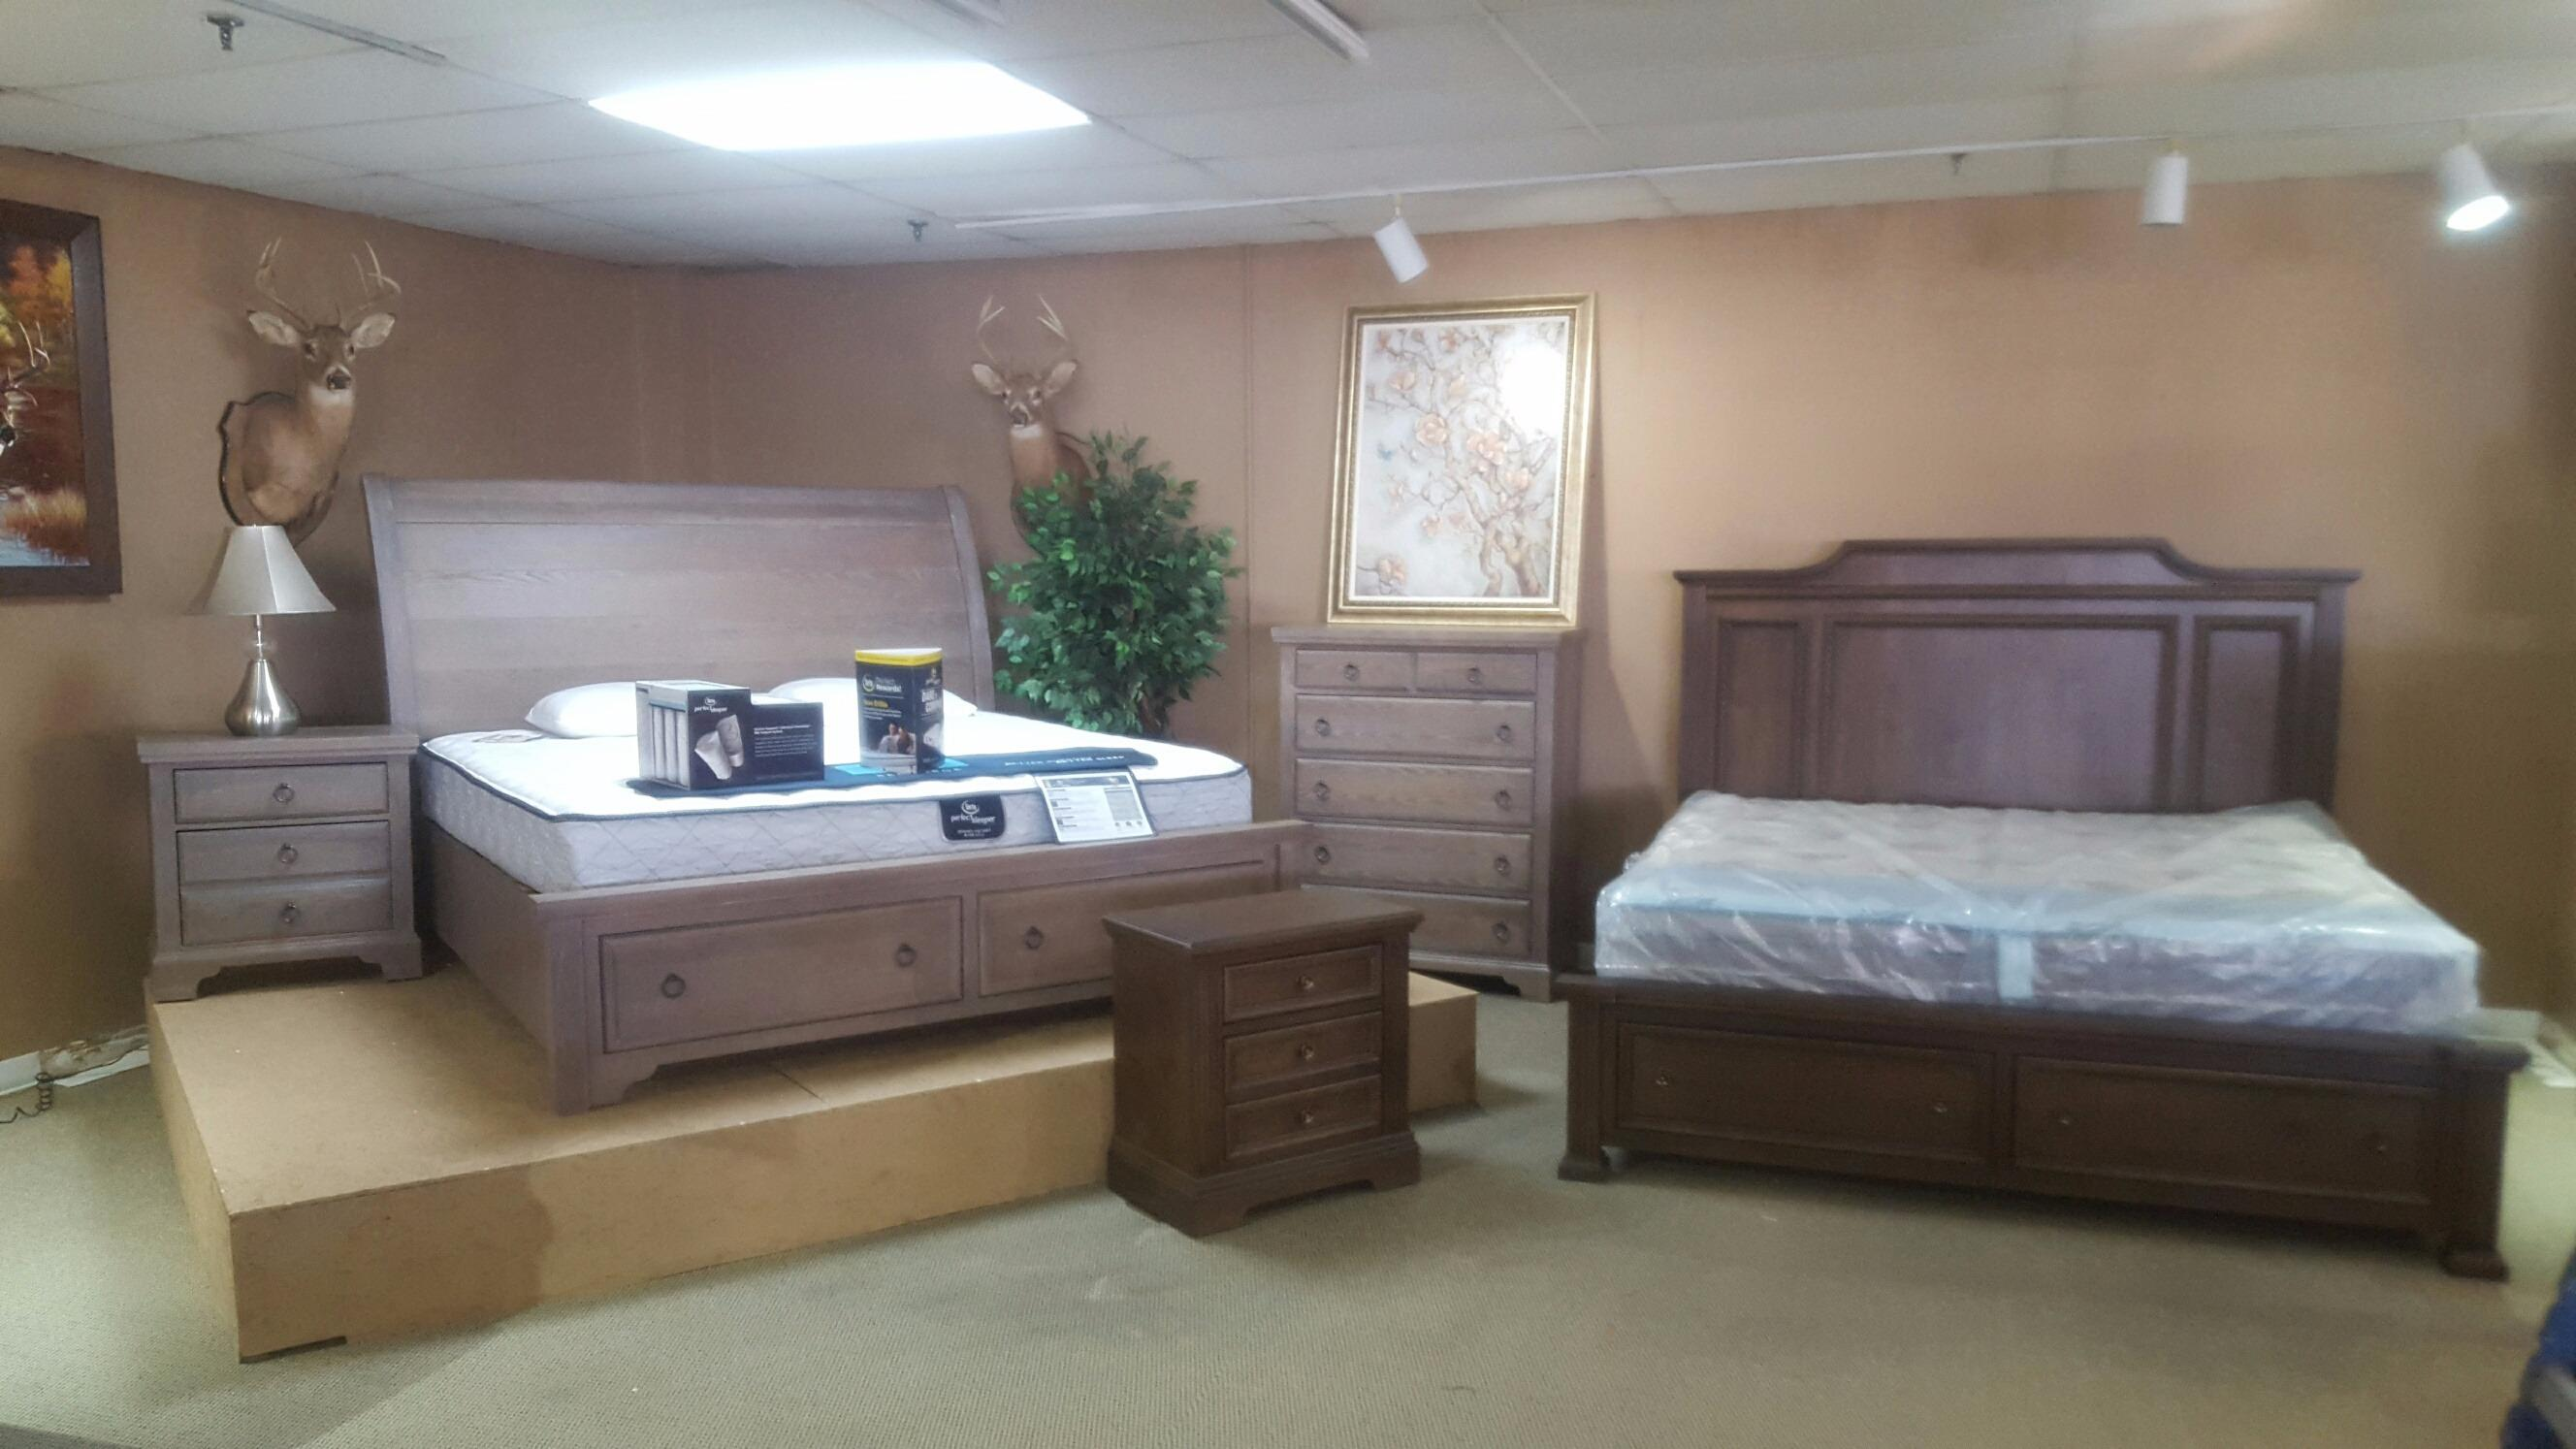 Schloemer Furniture And Sleep Center In Florence Ky 41042